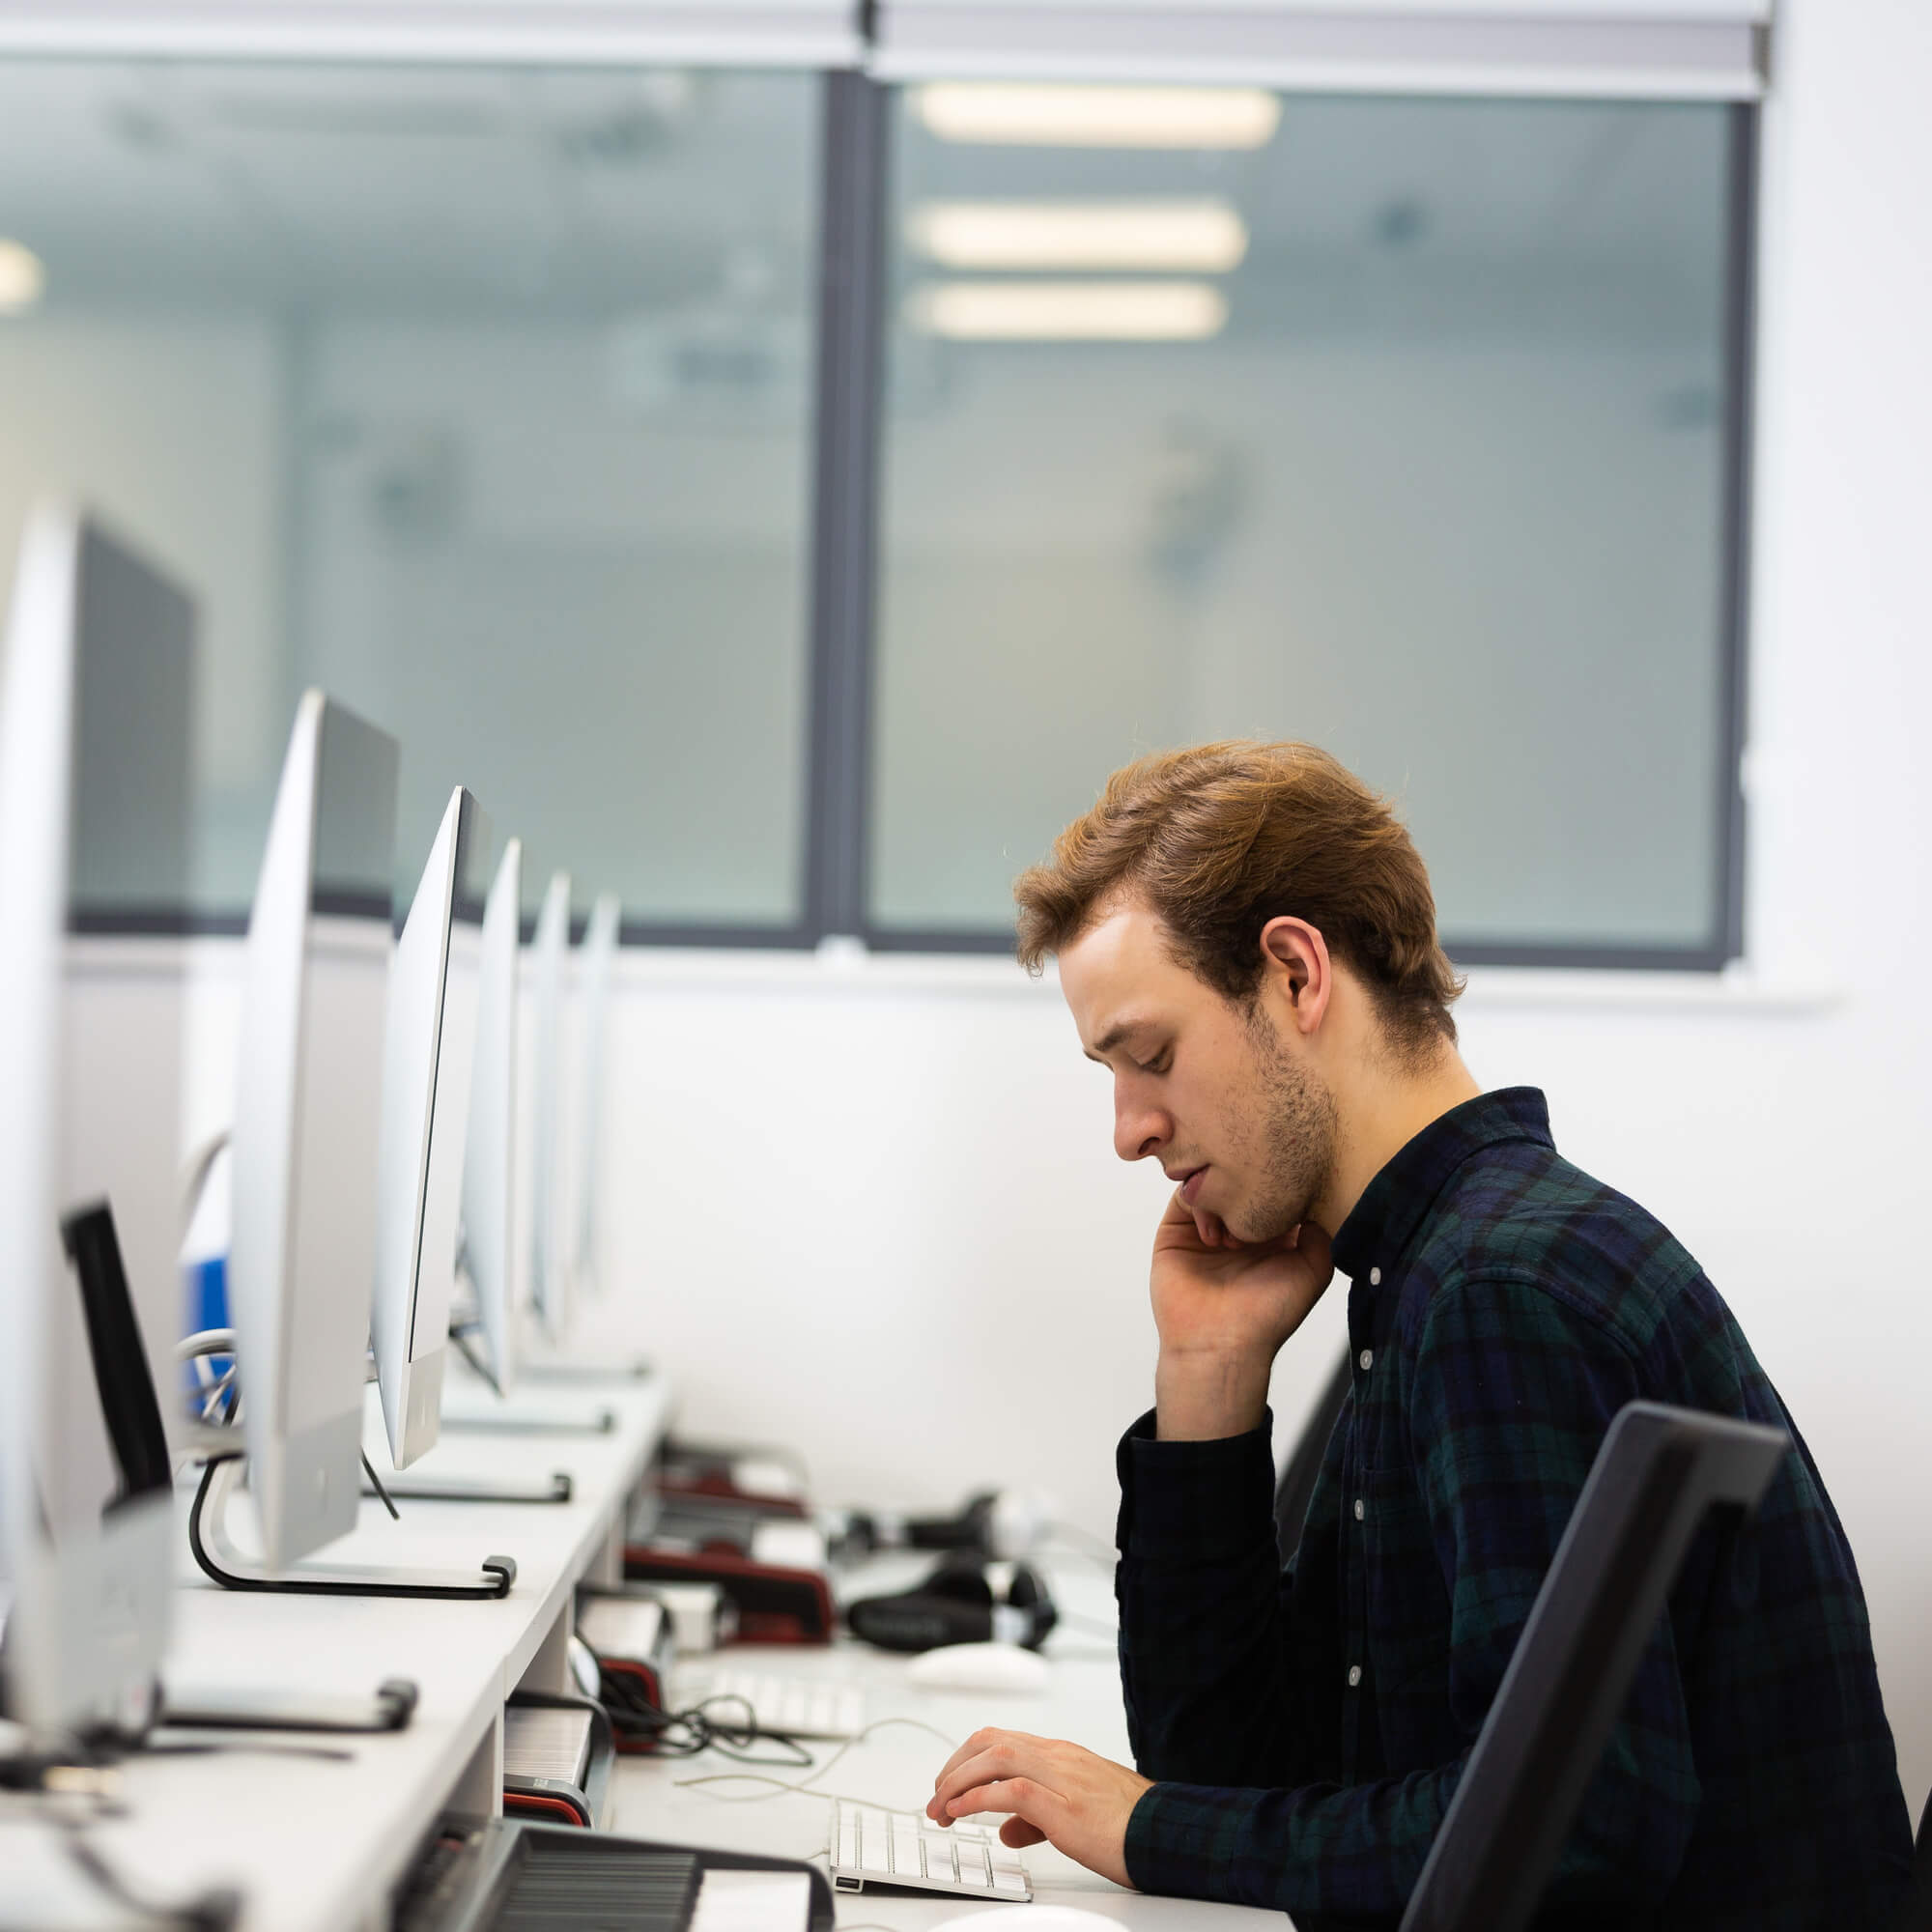 A student working in a computer lab